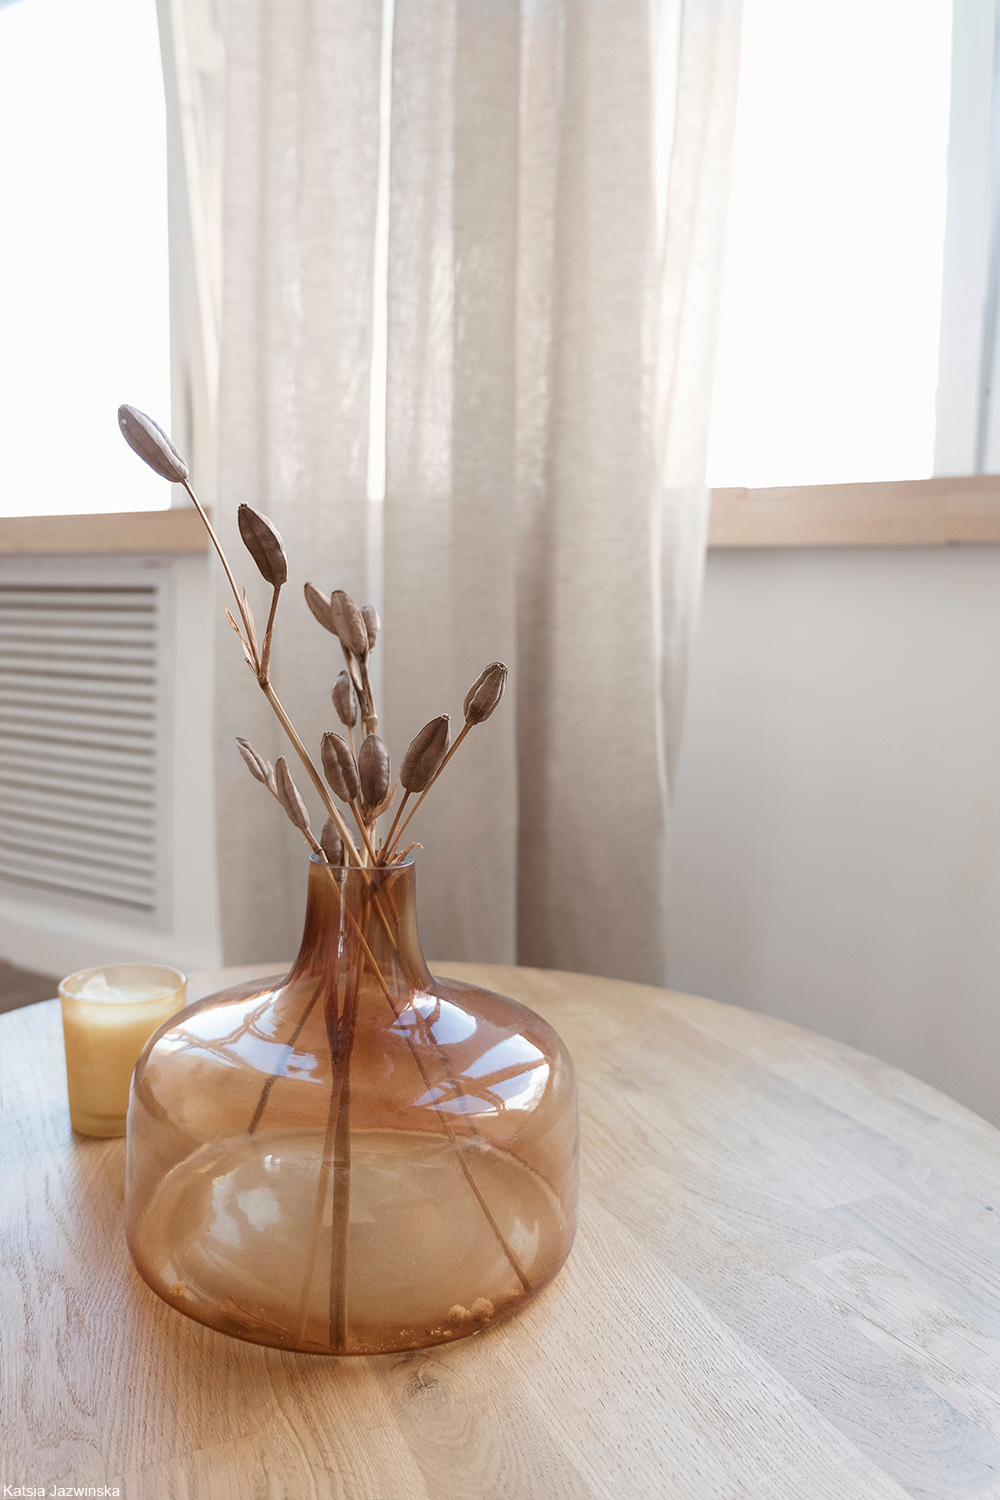 glass vessel with dried plants inside